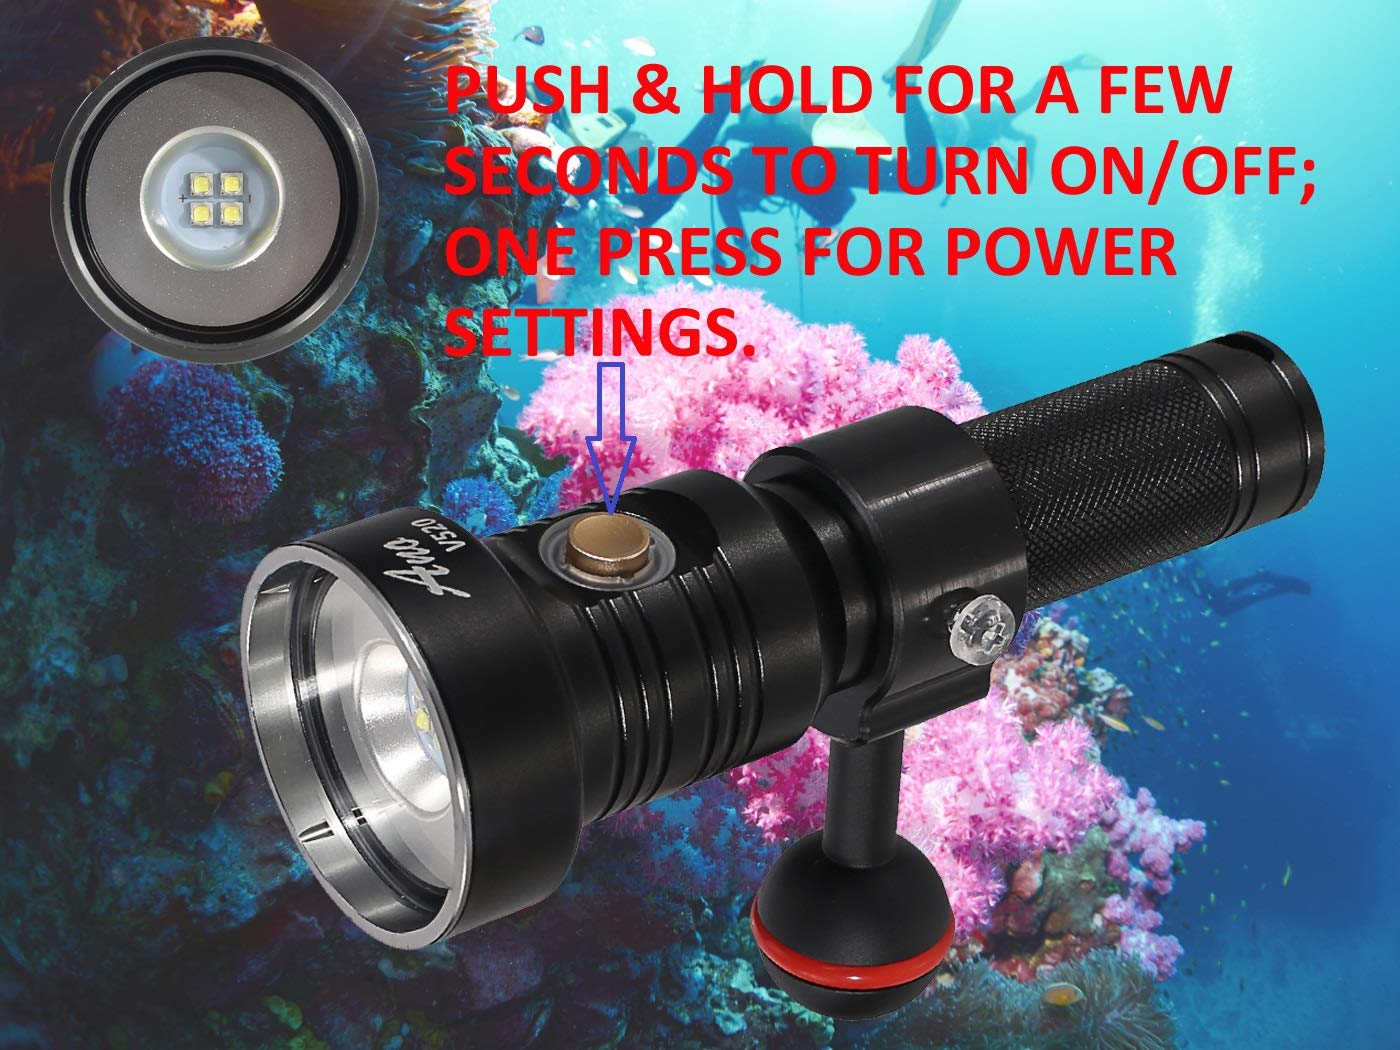 ANO V520 Dive Video Light 2000 Lumen with 2 Power Settings Included ICR18650 Battery and USB Charger Scuba Underwater Photography Light Waterproof 650ft